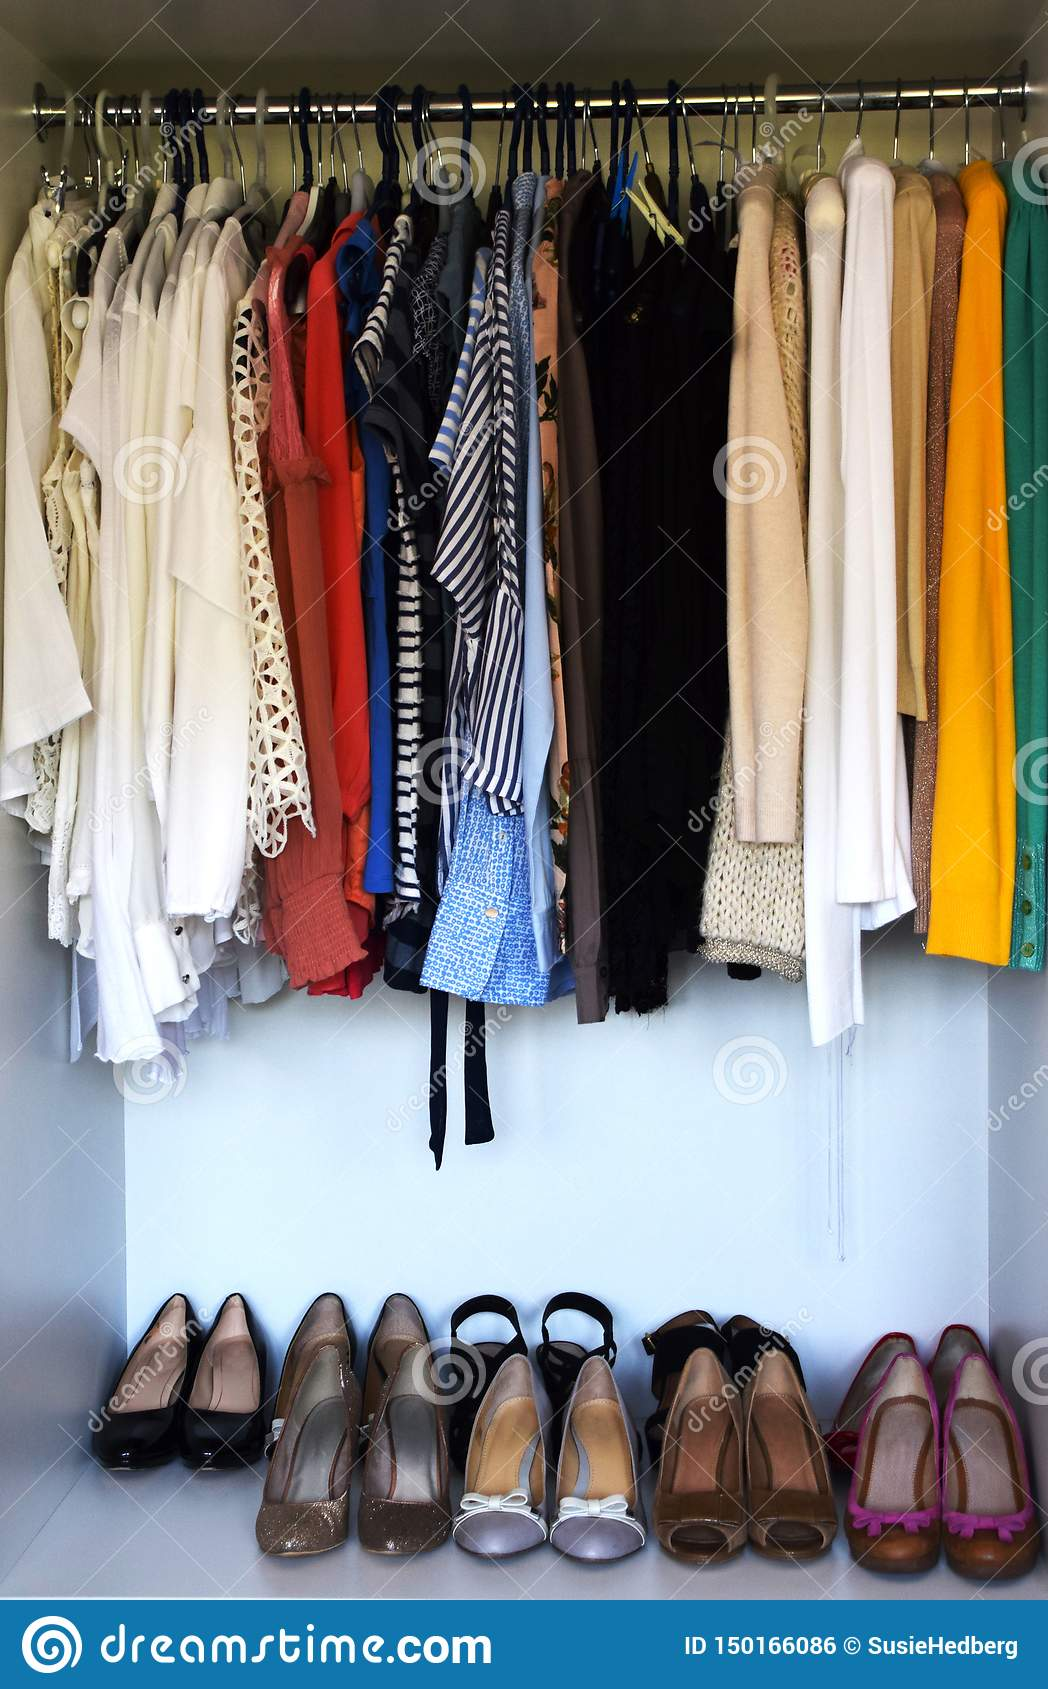 https www dreamstime com blouses shirts jumpers hanging clothes rack shoes displayed nicely wardrobe image150166086